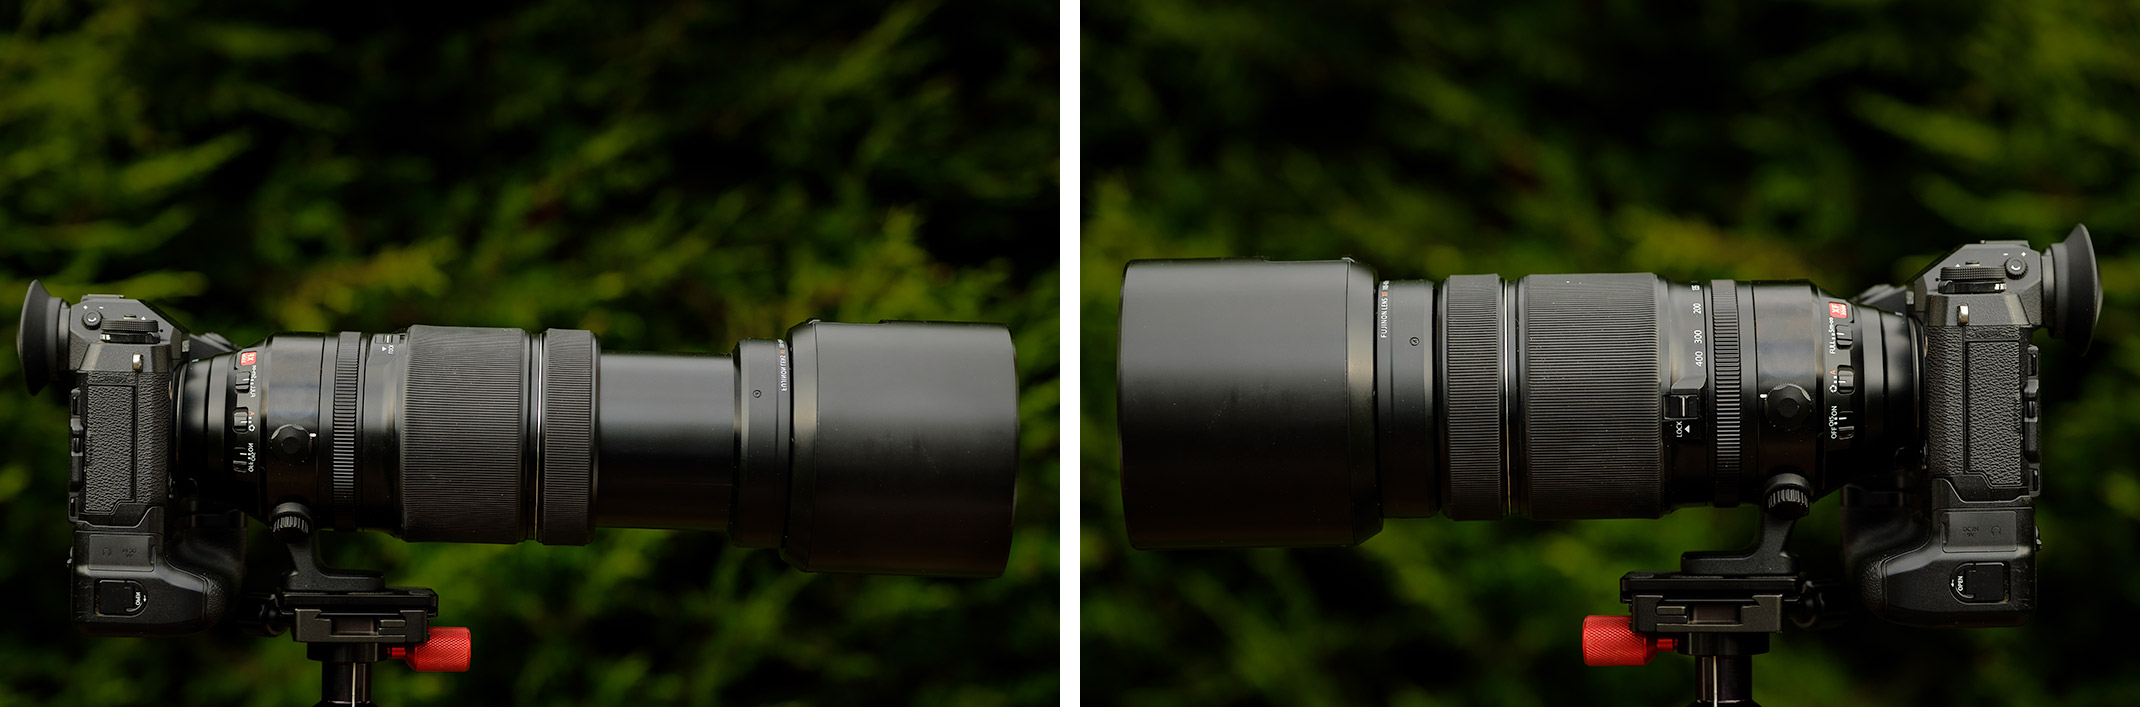 Fujifilm 100-400 f/4.5-5.6 (Left) Extended to 400mm with lens hood attached, (Right) Retracted at 100mm with lens hood attached.